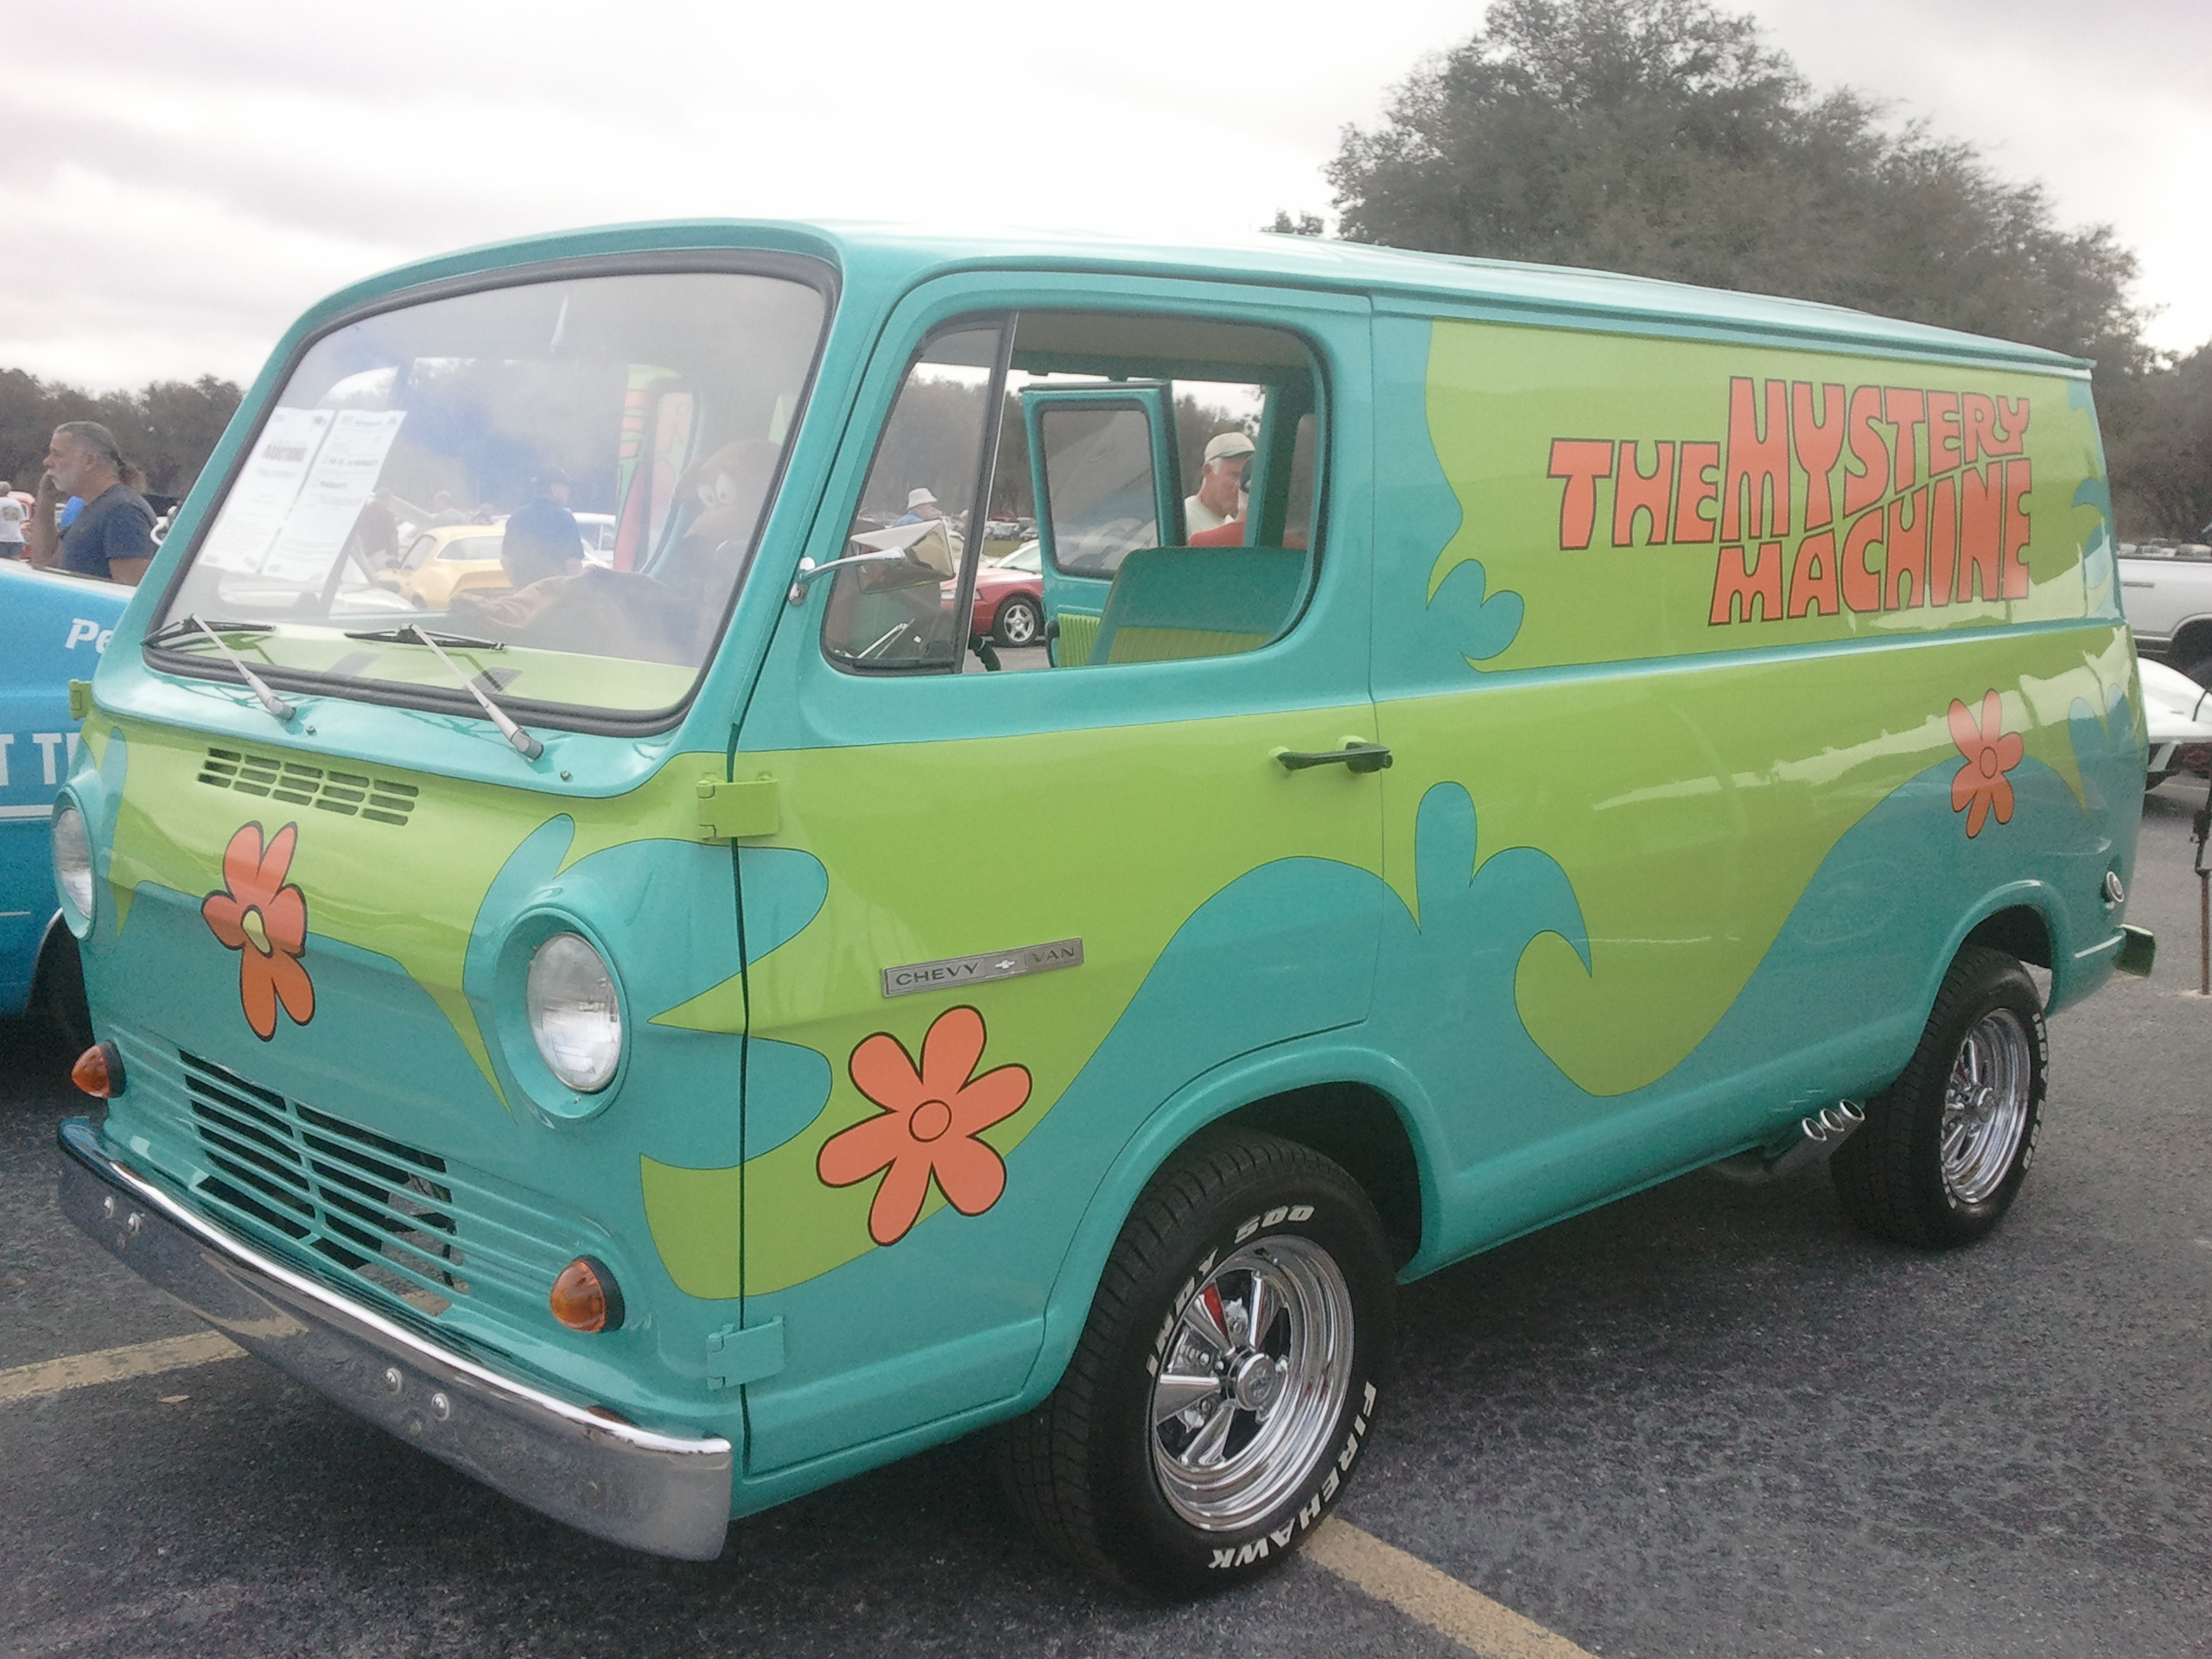 what of was the mystery machine